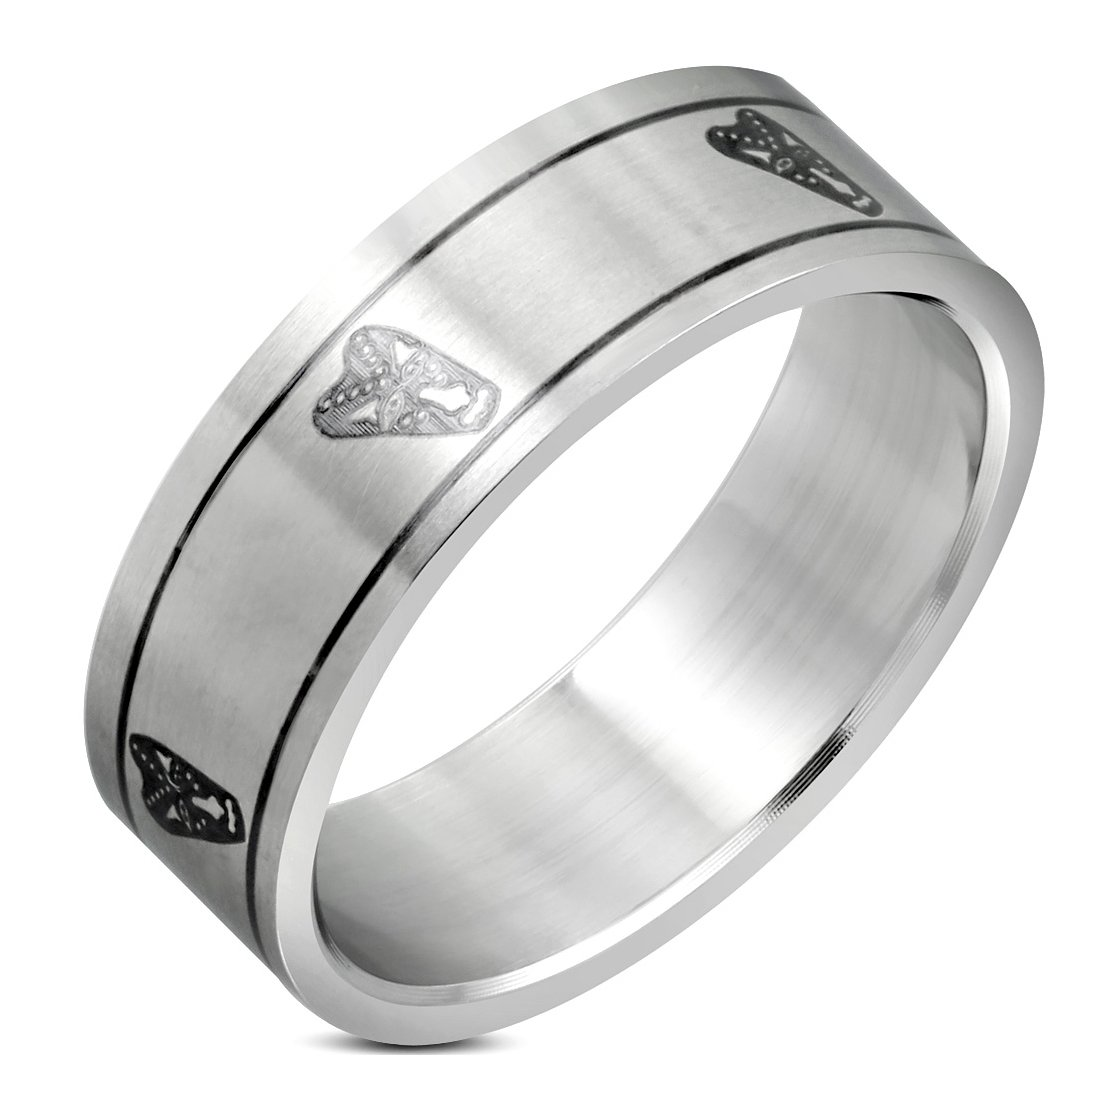 Stainless Steel Matte Finished 2 Color Wizard Mask Flat Band Ring